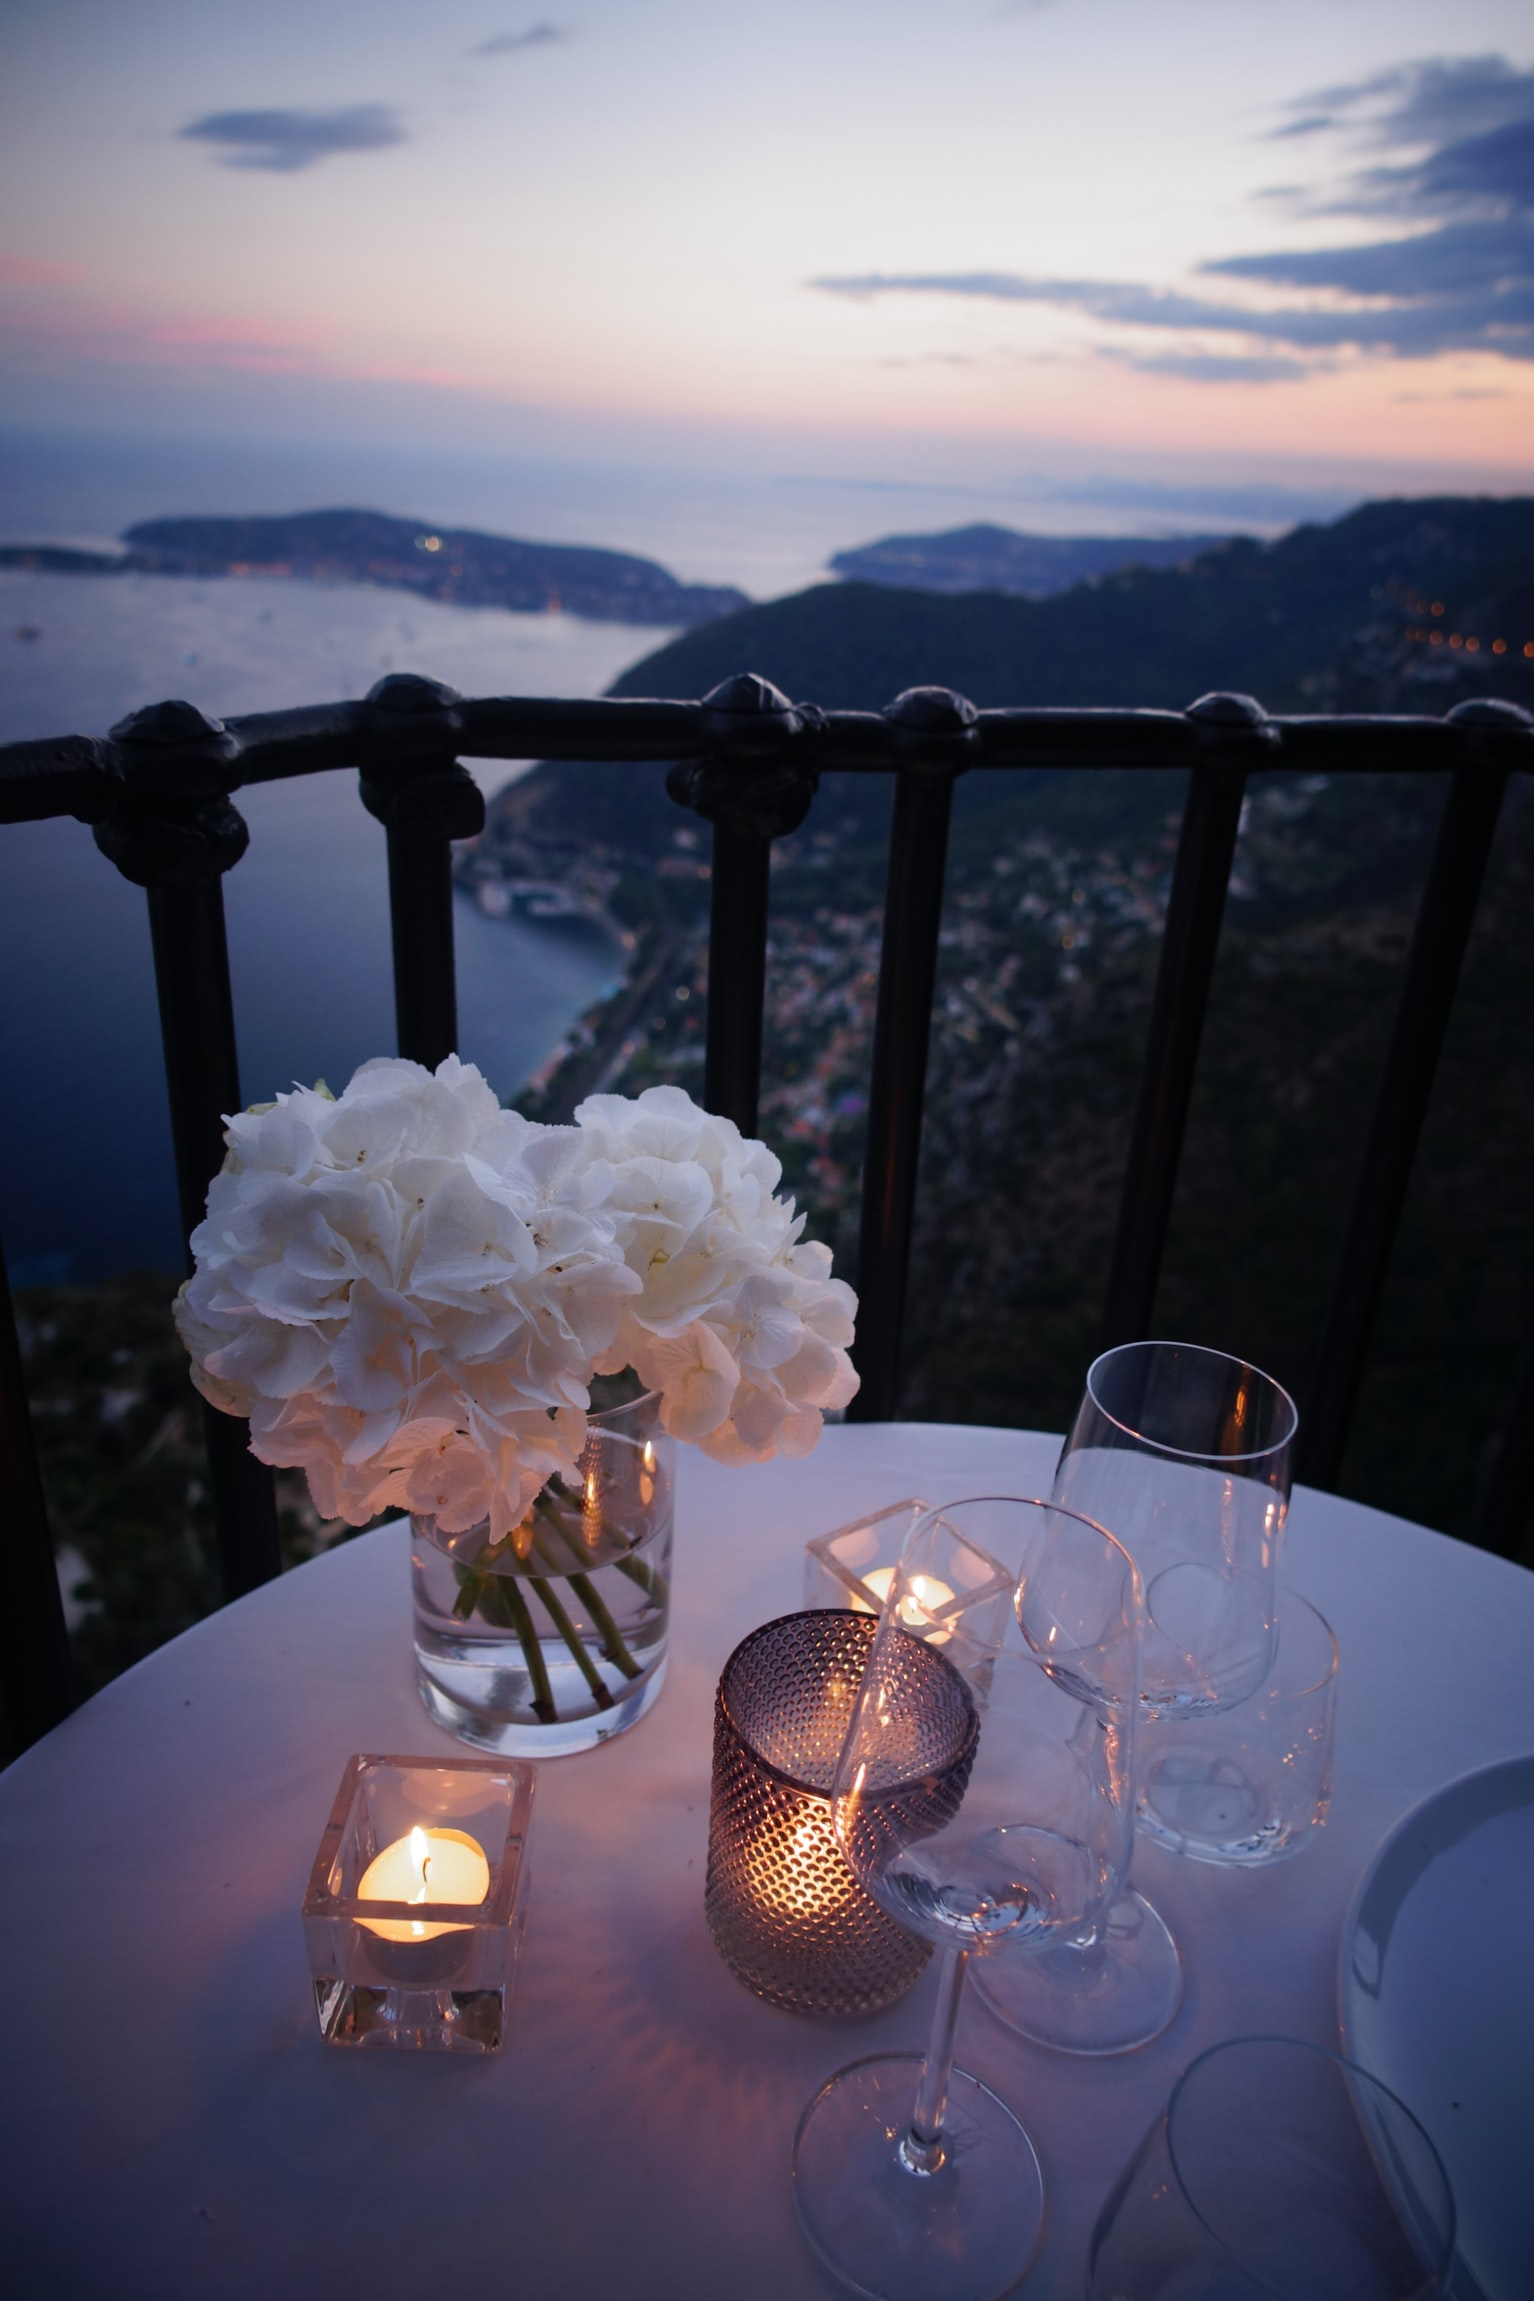 Wine glasses, candles and flowers